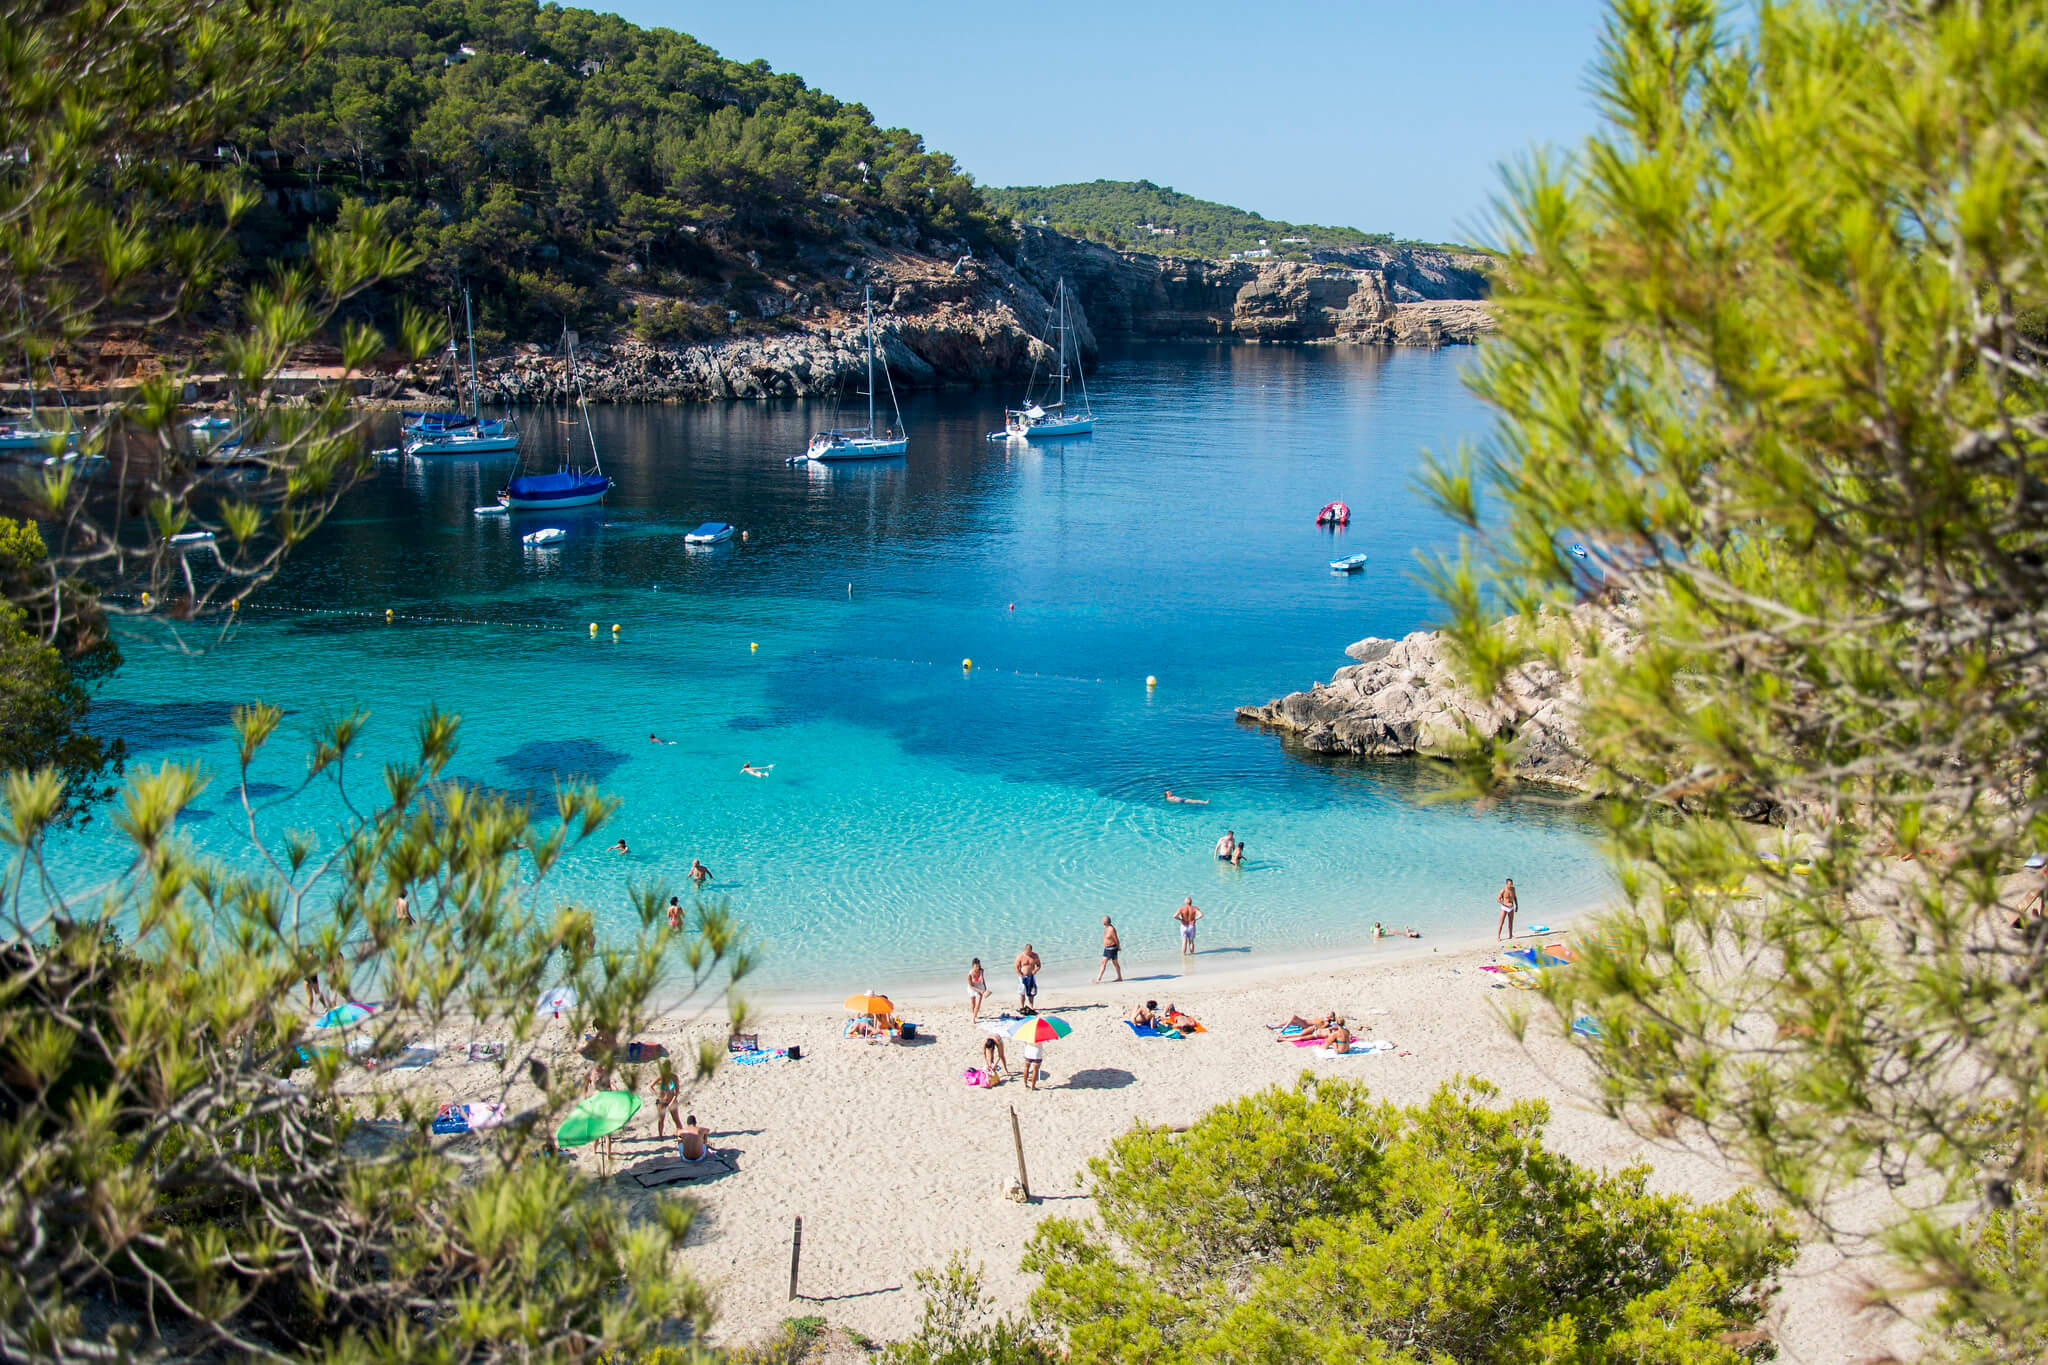 https://www.white-ibiza.com/wp-content/uploads/2020/03/ibiza-beaches-cala-saladeta-01.jpg